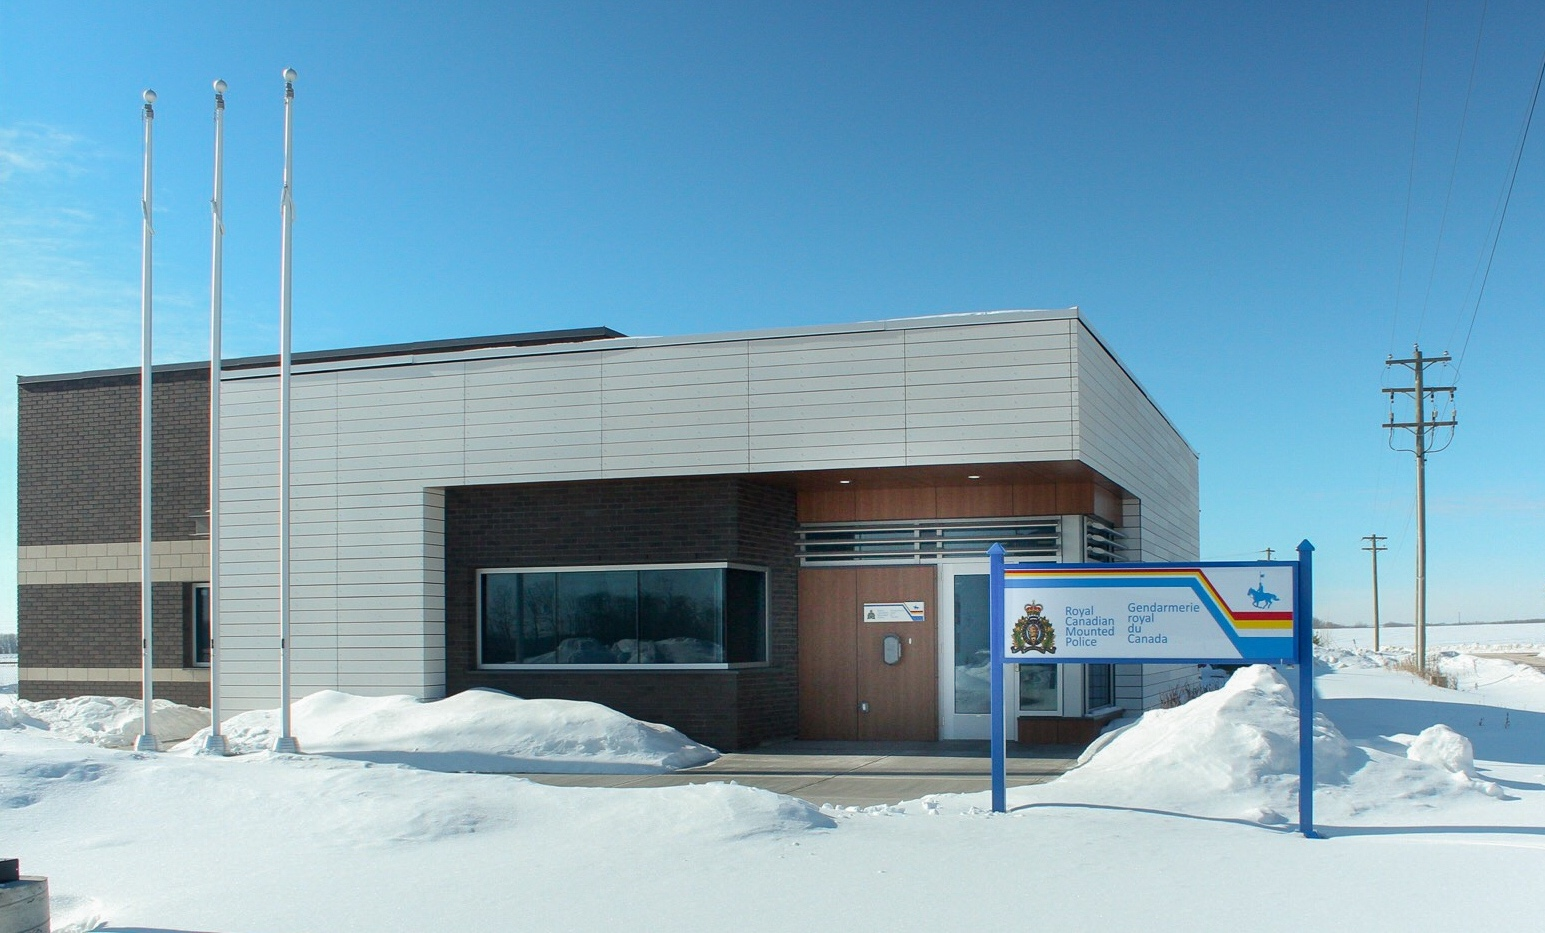 Job Name:  Elk Point RCMP   Contractor:  Kenlar Insulations   Description:  Construction of a new RCMP detachment in Elk Point Alberta. The building also included a detention facility and an intricate security system.